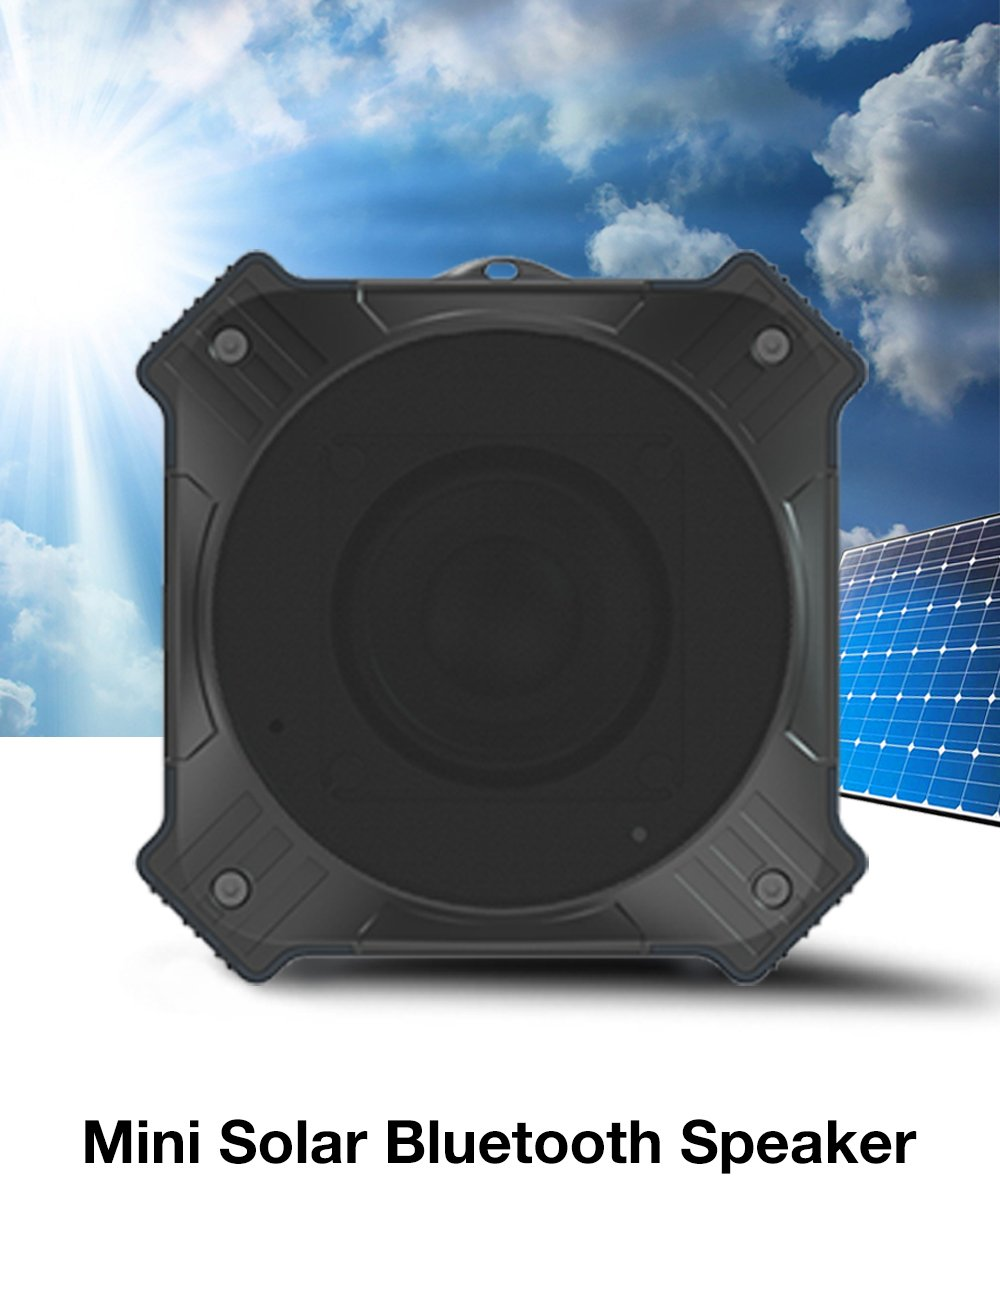 Solar Powered Bluetooth Speaker, IPX6 Waterproof Outdoor Portable Wireless Speaker with 20-Hour Playtime, HD Audio, Built-in Mic, 5W Enhanced Bass Sound. Perfect for iPhone, Samsung and More